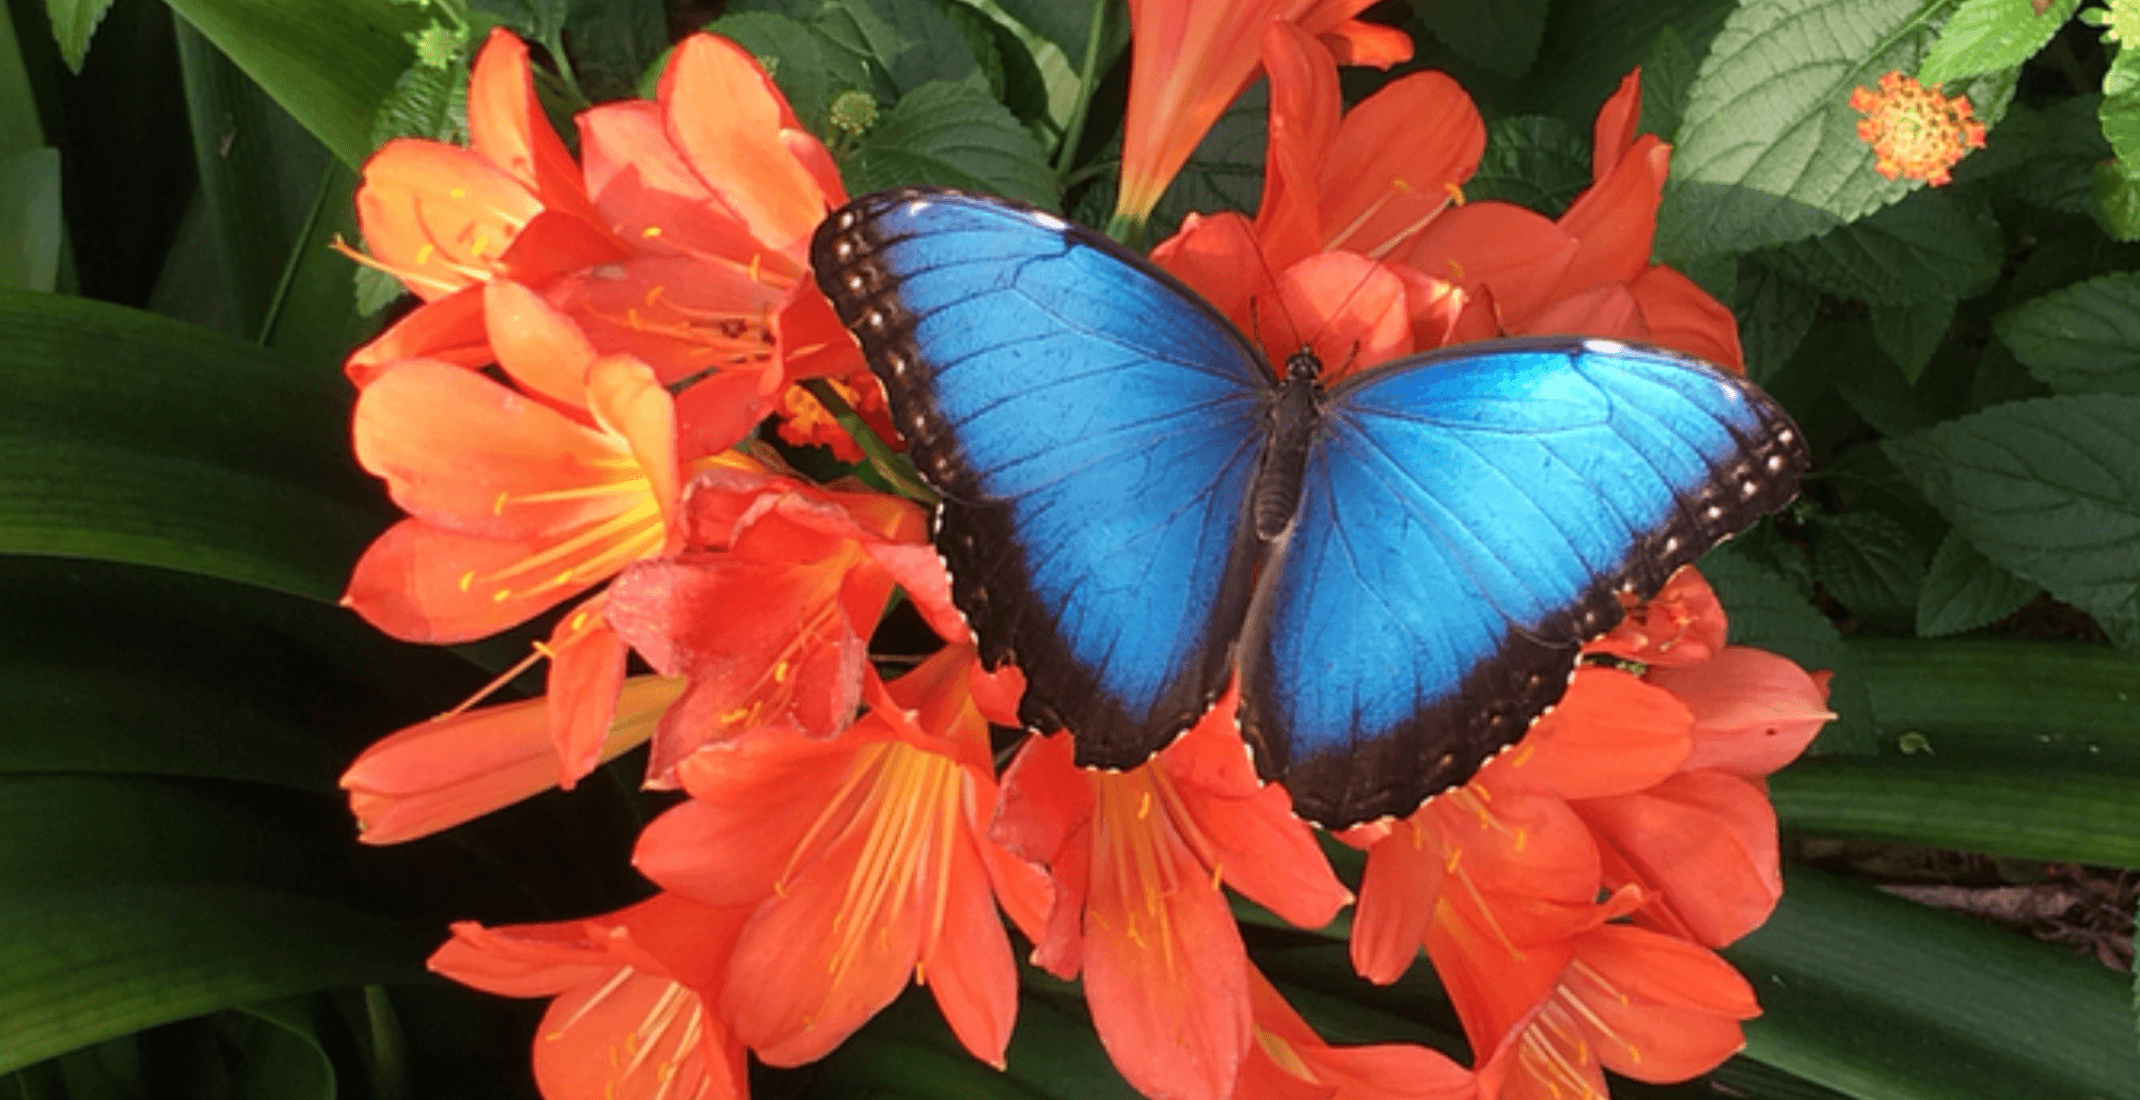 Butterflies Go Free is the most magical exhibit in Montreal right now (PHOTOS)